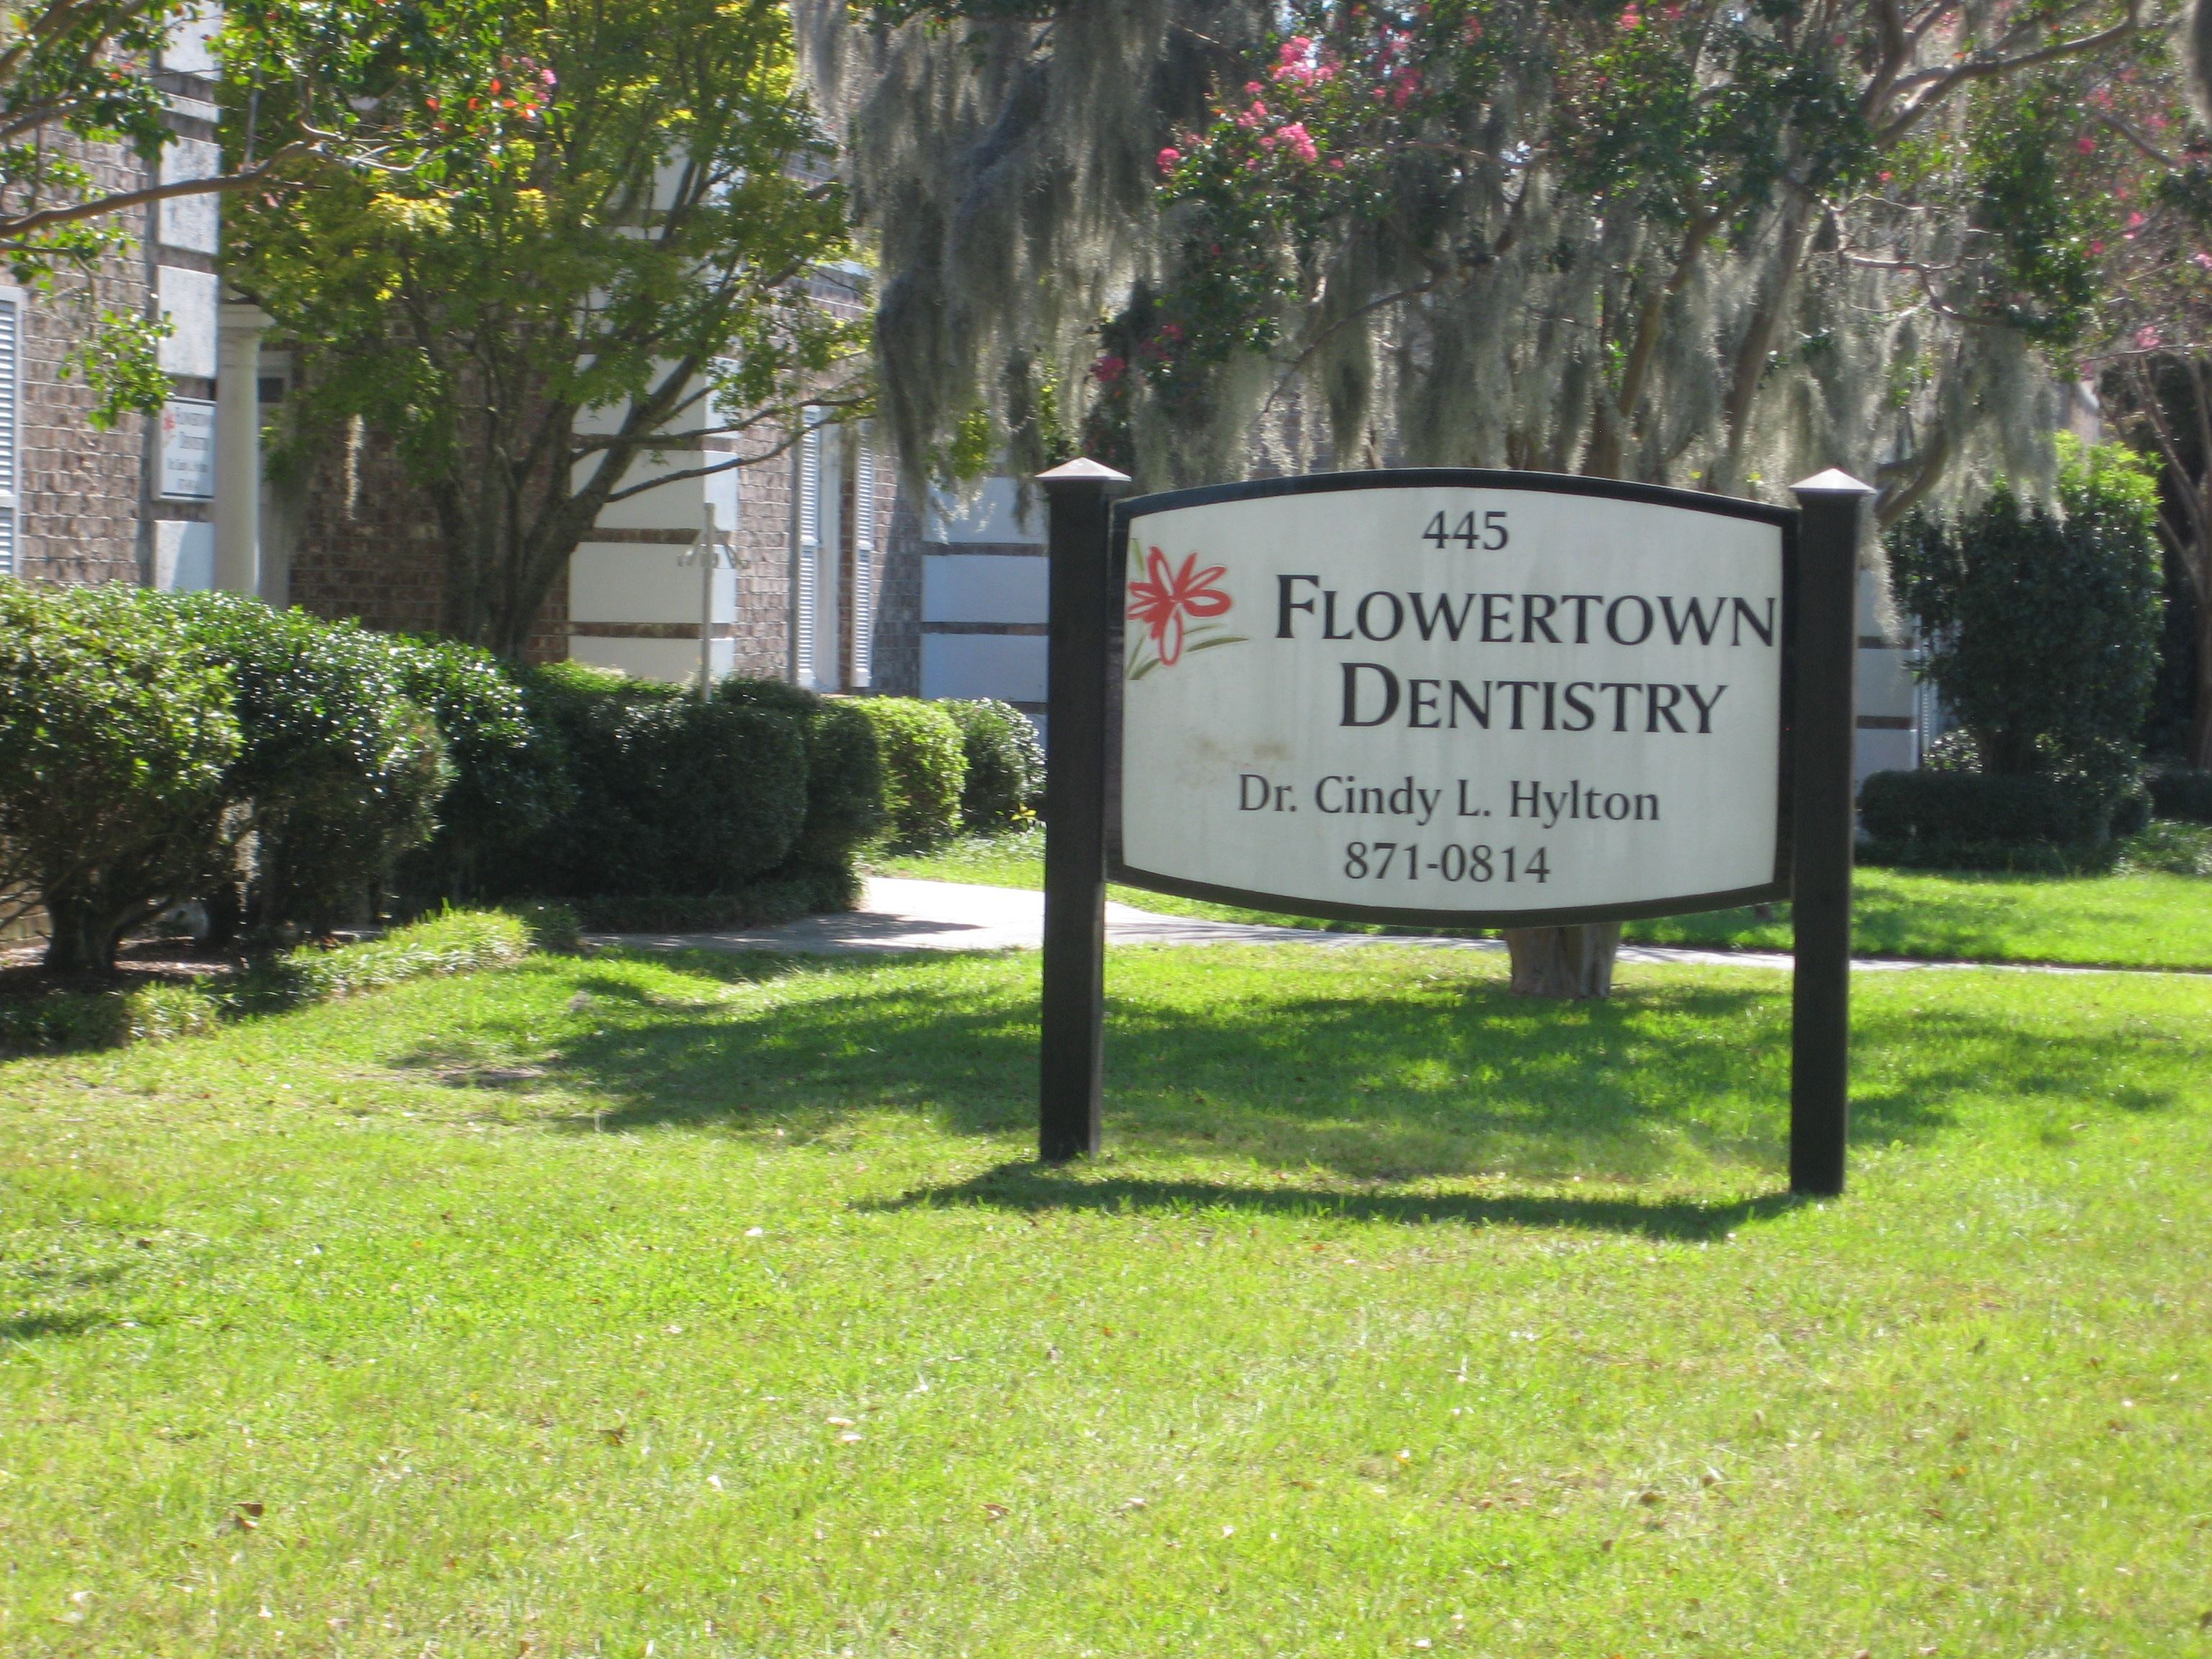 Flowertown Dentistry